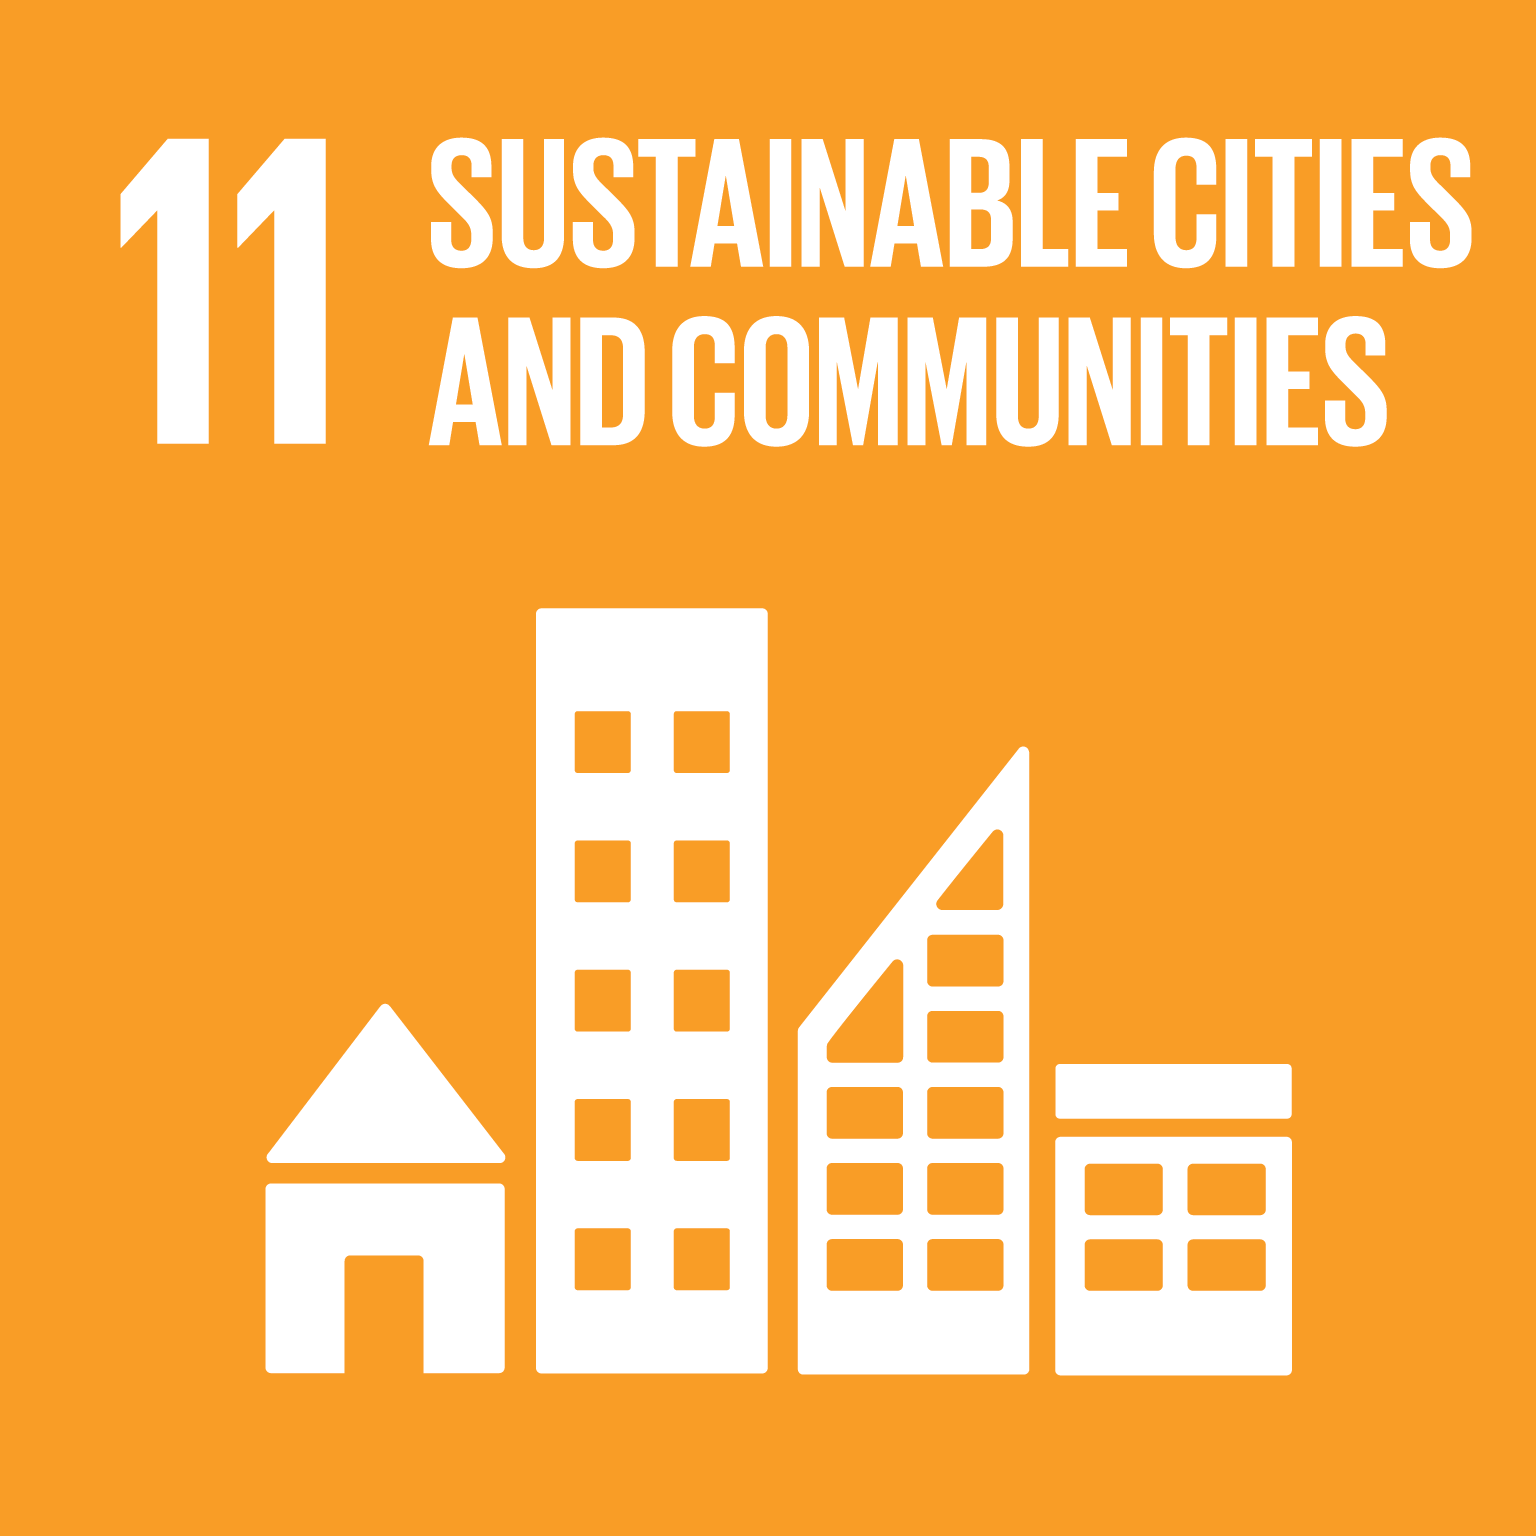 How can we achieve Sustainable Cities and Communities in Haryana